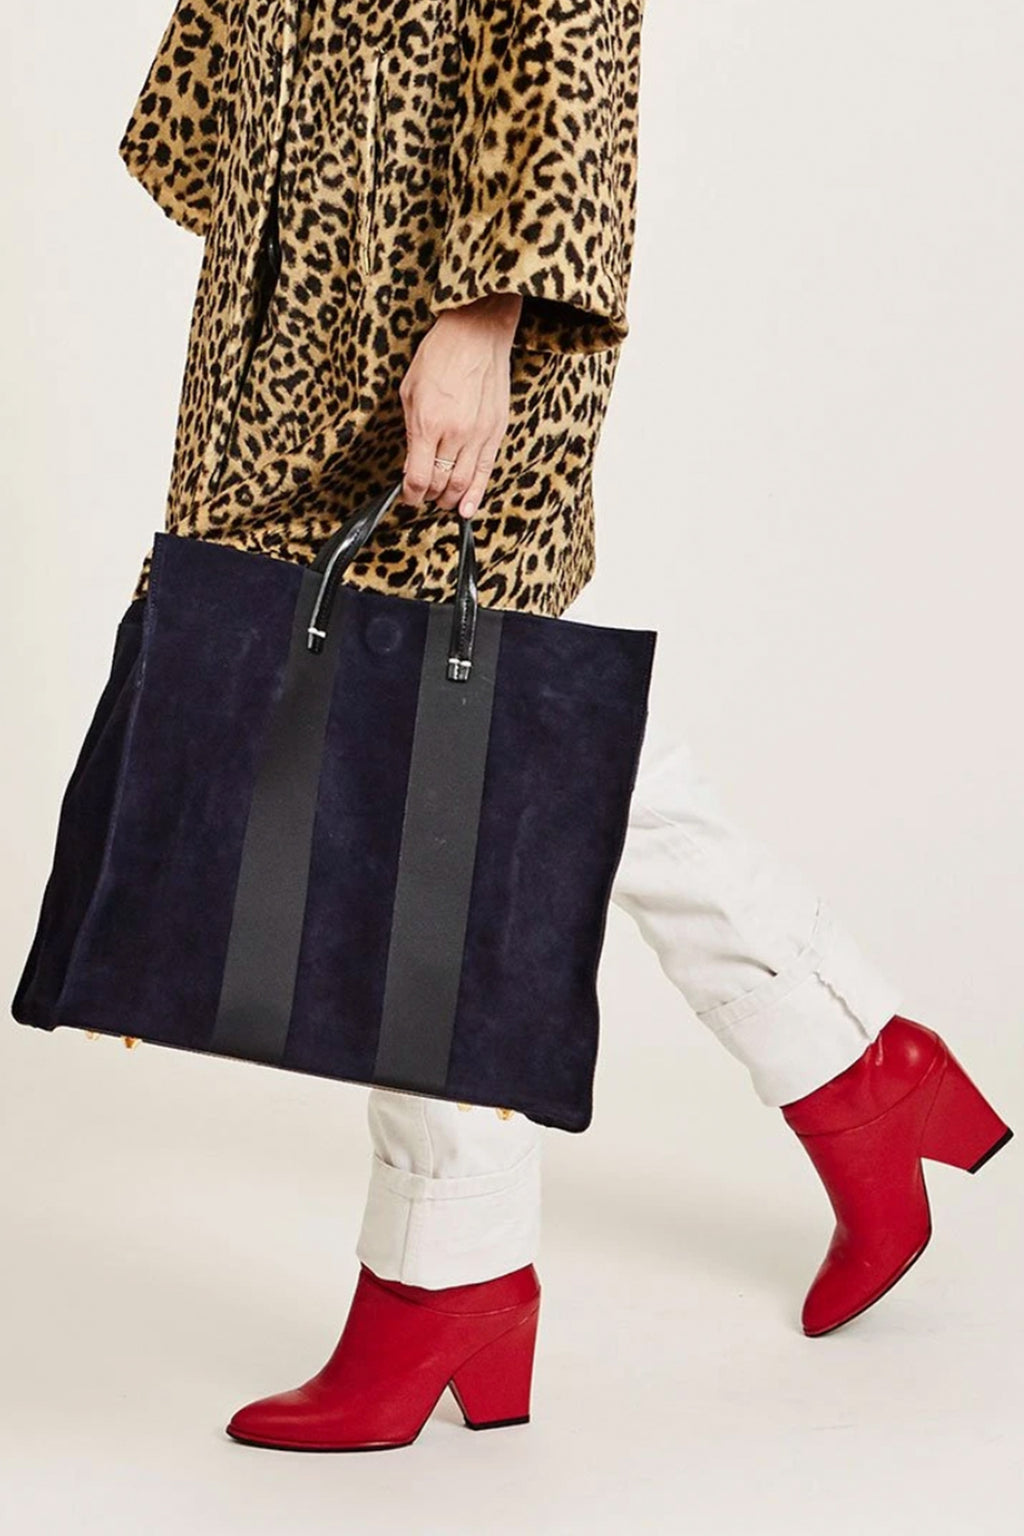 Clare Vivier Suede Tote in Navy with Black Racing Stripe